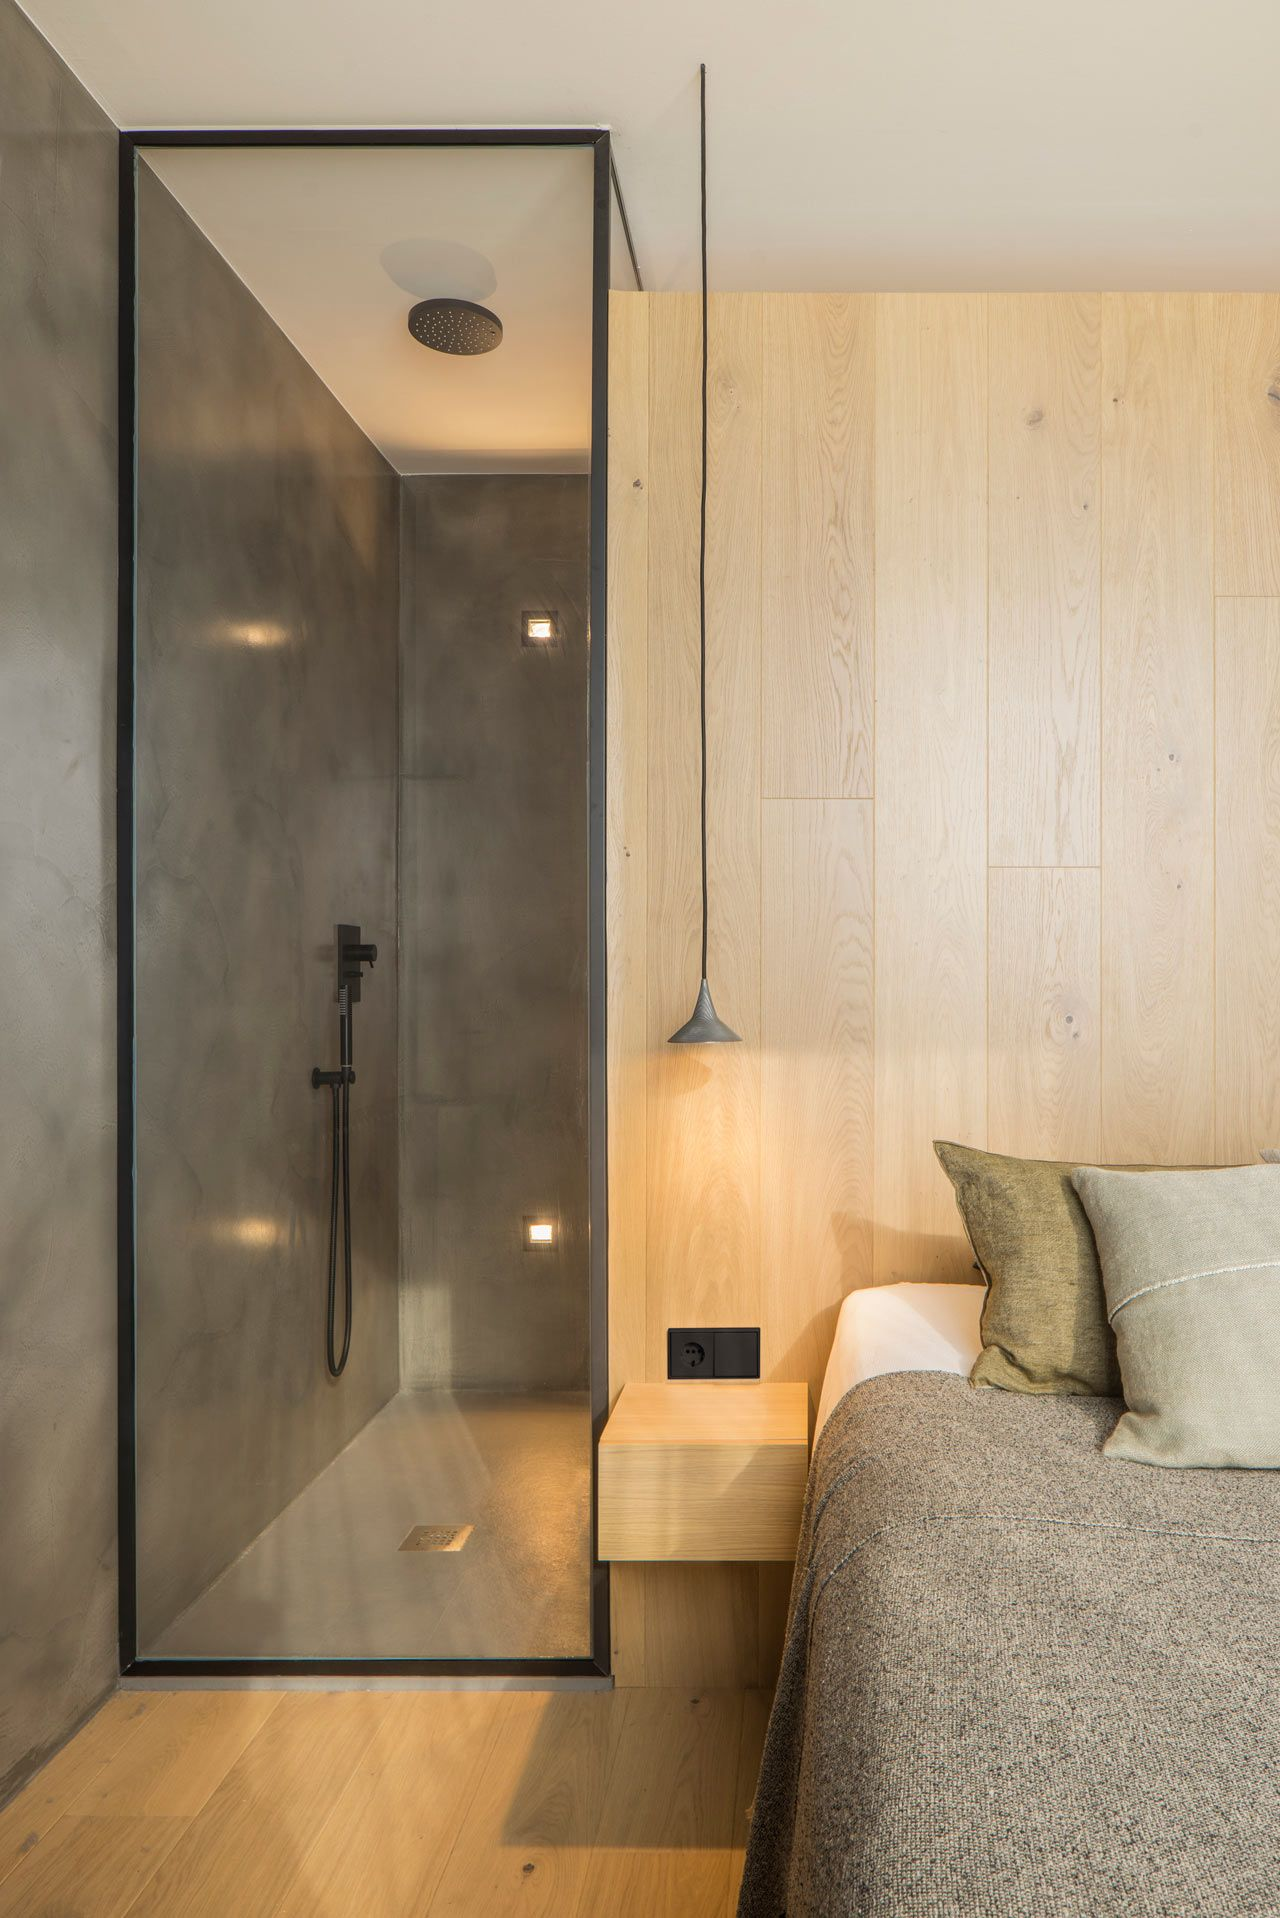 bathroom, wooden floor, grey wall, wooden wall, wooden floating sidde table, glass door, grey pendant